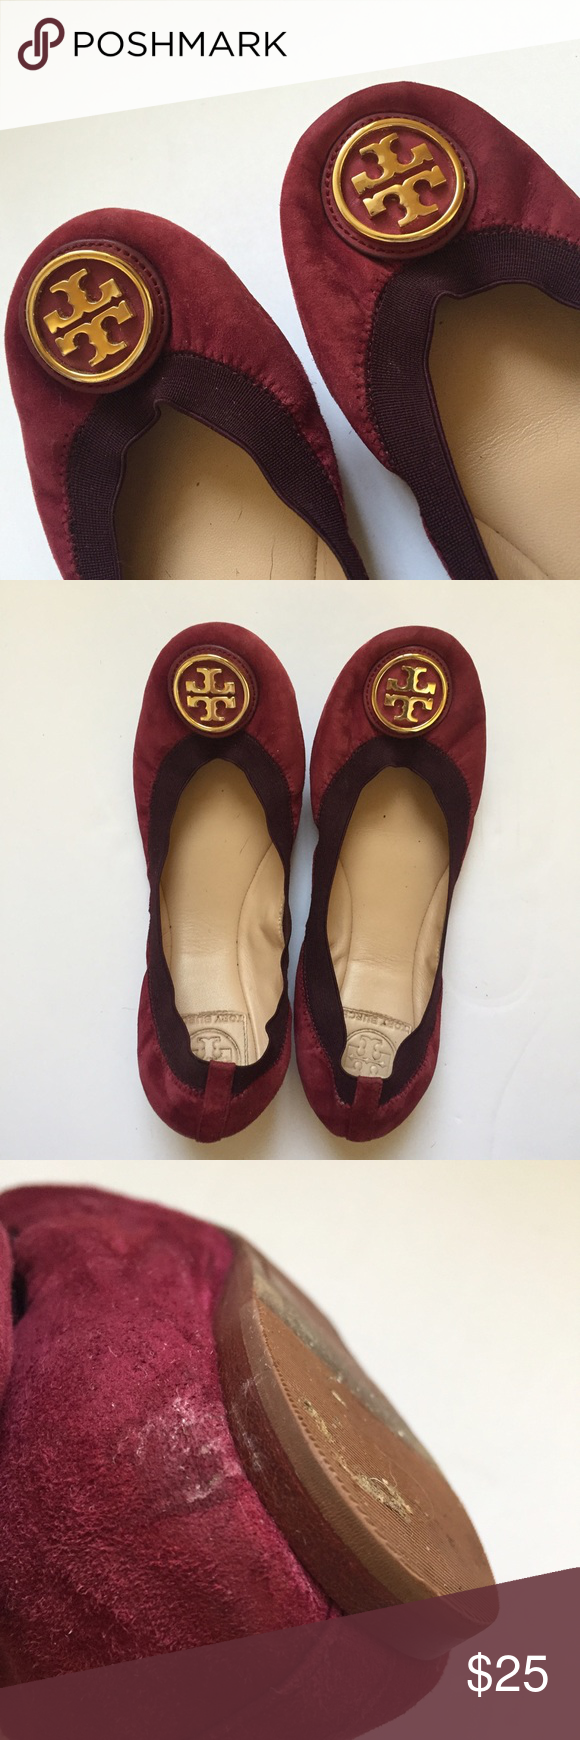 86d9598f3d1 Tory Burch Burgundy Suede Ballet Flats Authentic Tory Burch  less than a  year old but semi worn... Price reflects that. Tory Burch Shoes Flats    Loafers